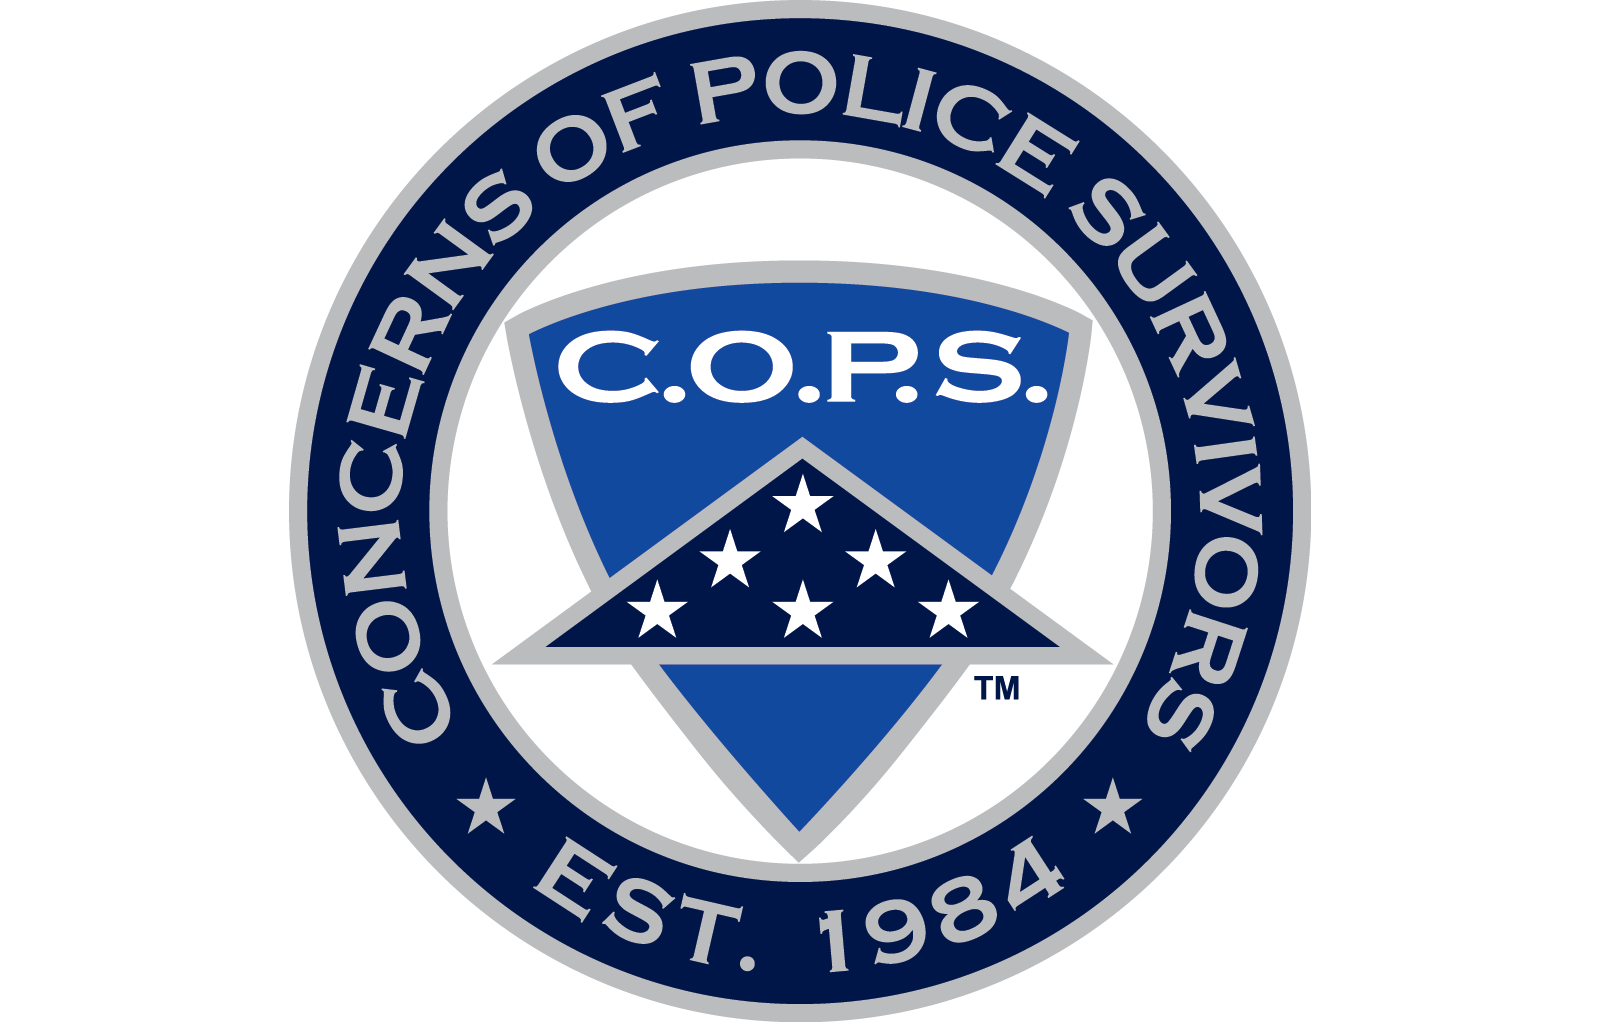 C.O.P.S. logo | 2019 National Conference on Law Enforcement Wellness and Trauma